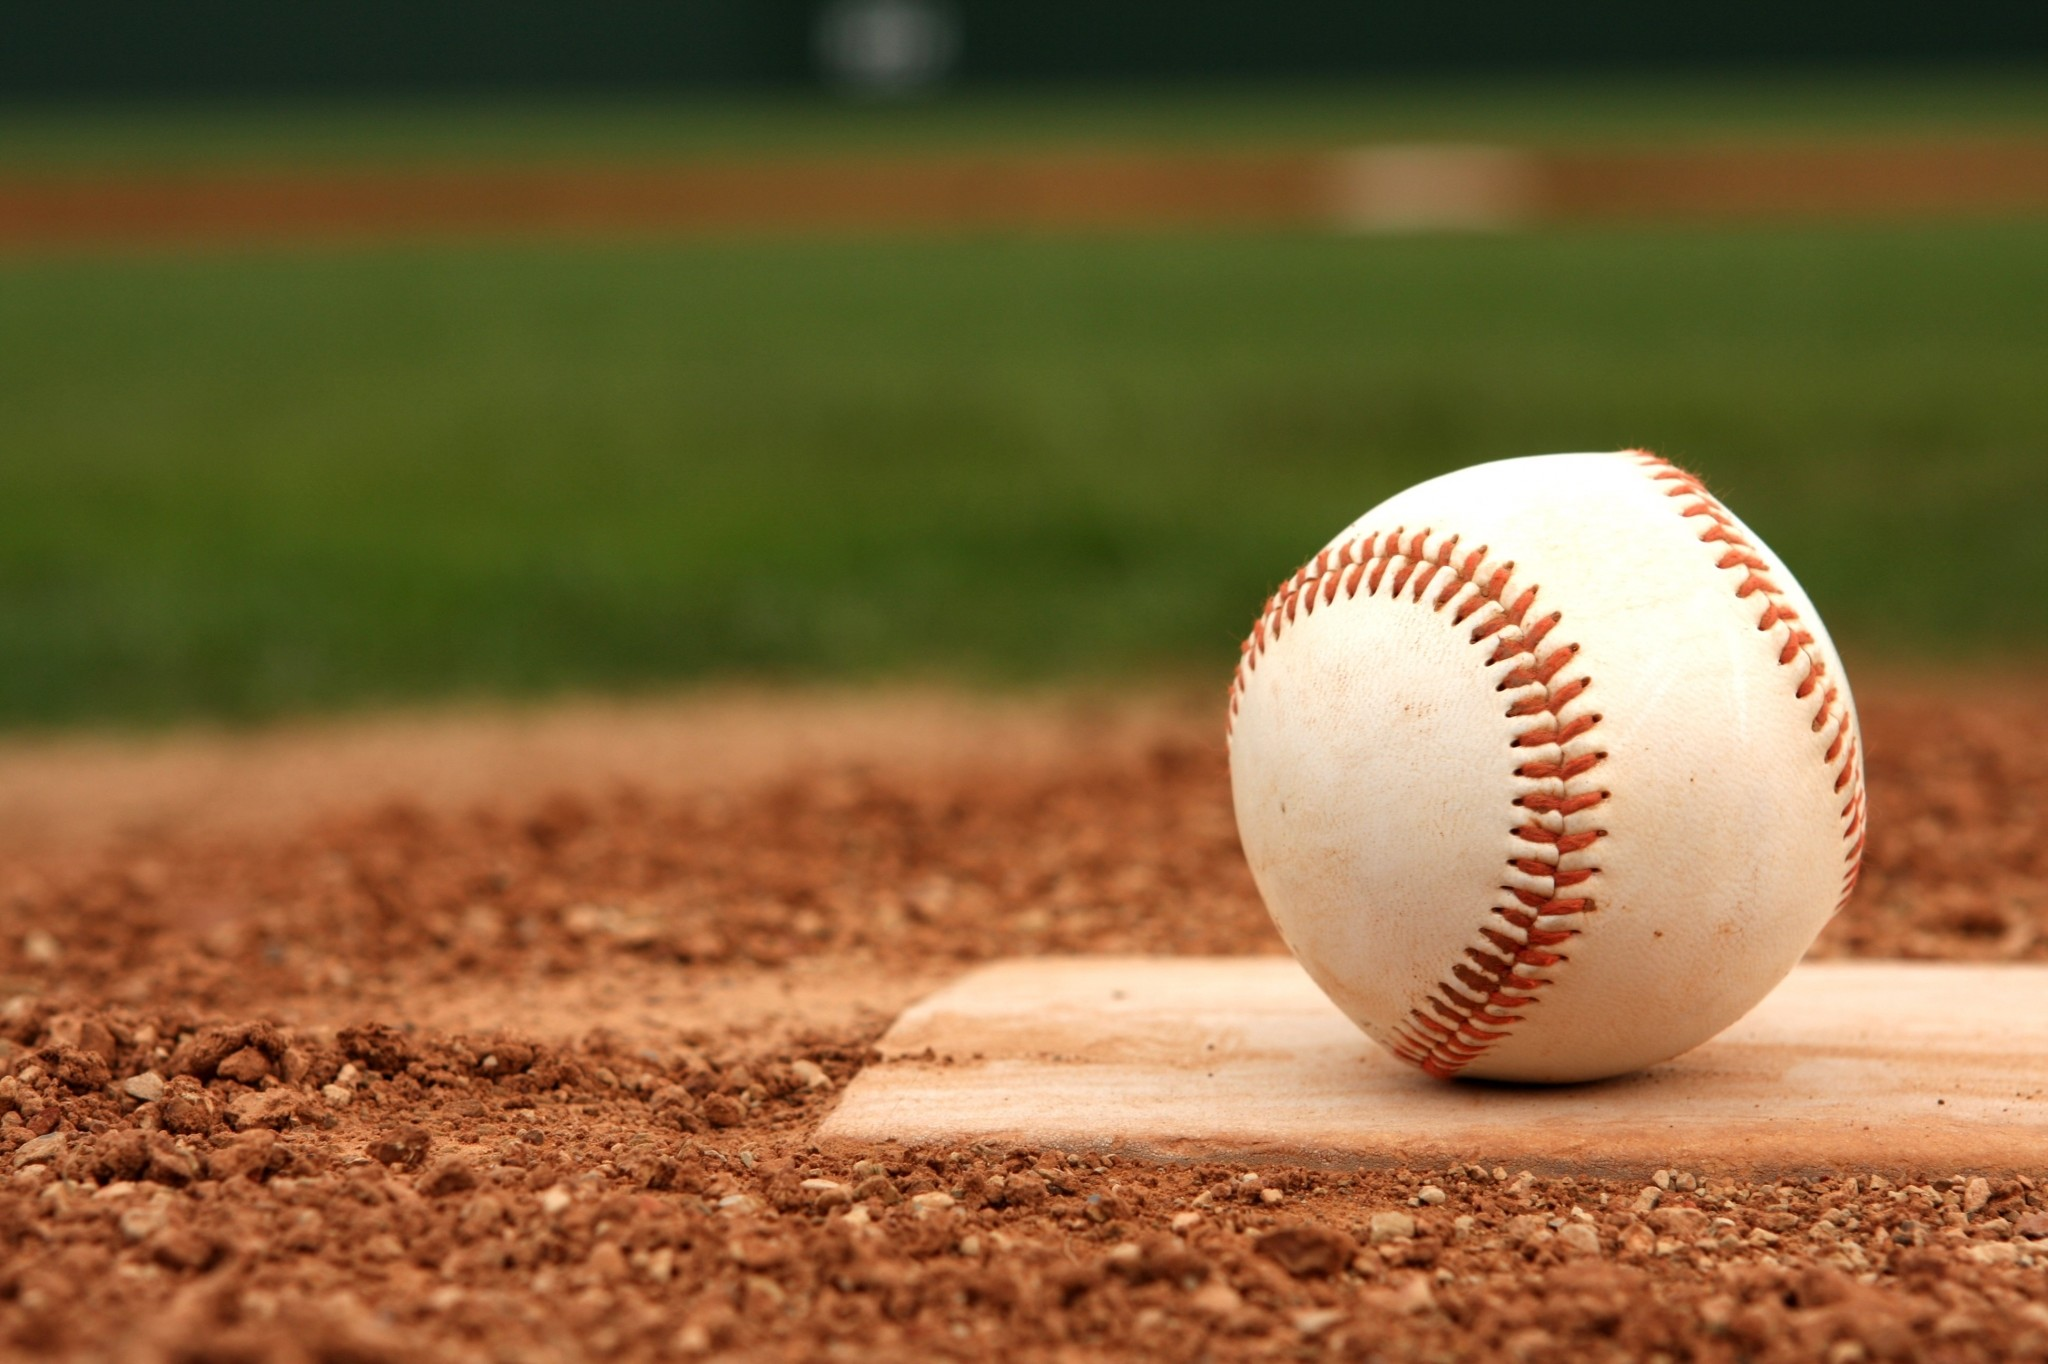 Free Download Baseball Field Wallpaper 64 Images 2048x1364 For Your Desktop Mobile Tablet Explore 34 Popular Baseball Desktop Backgrounds Popular Baseball Desktop Backgrounds Popular Wallpaper Baseball Backgrounds